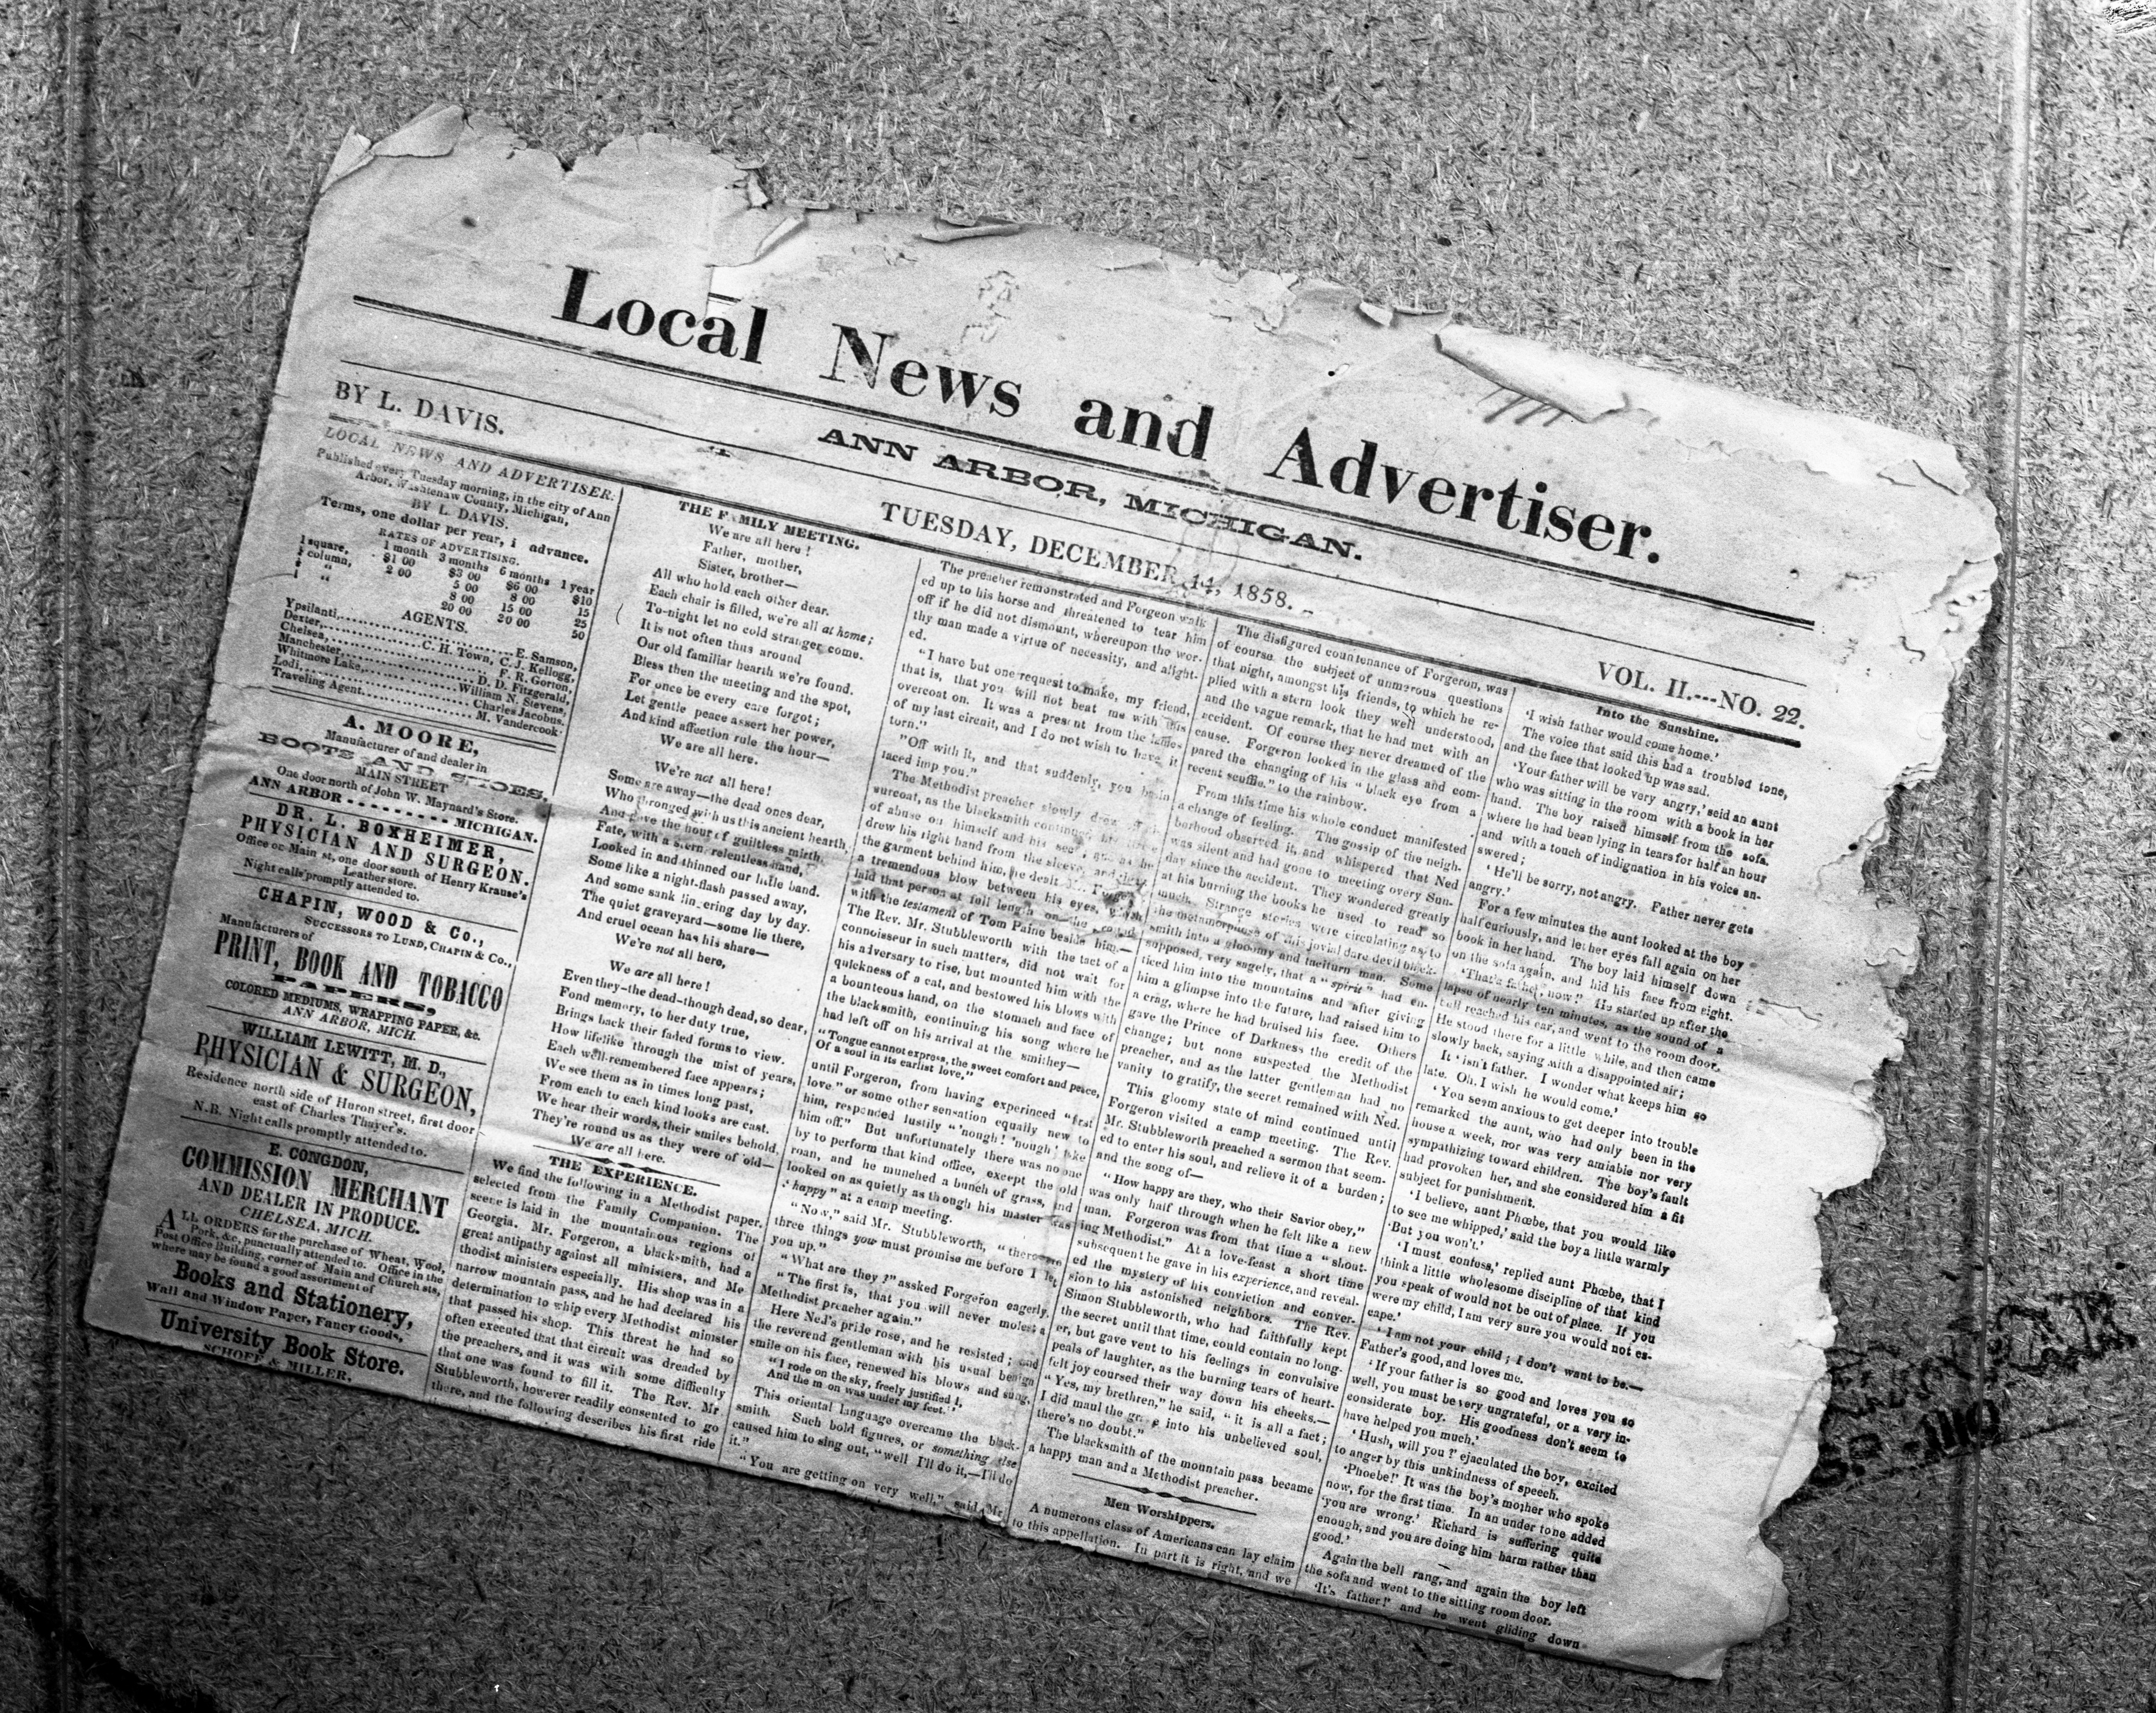 Photograph of Page 1 of an 1858 issue of the Local News and Advertiser newspaper, December 1958 image